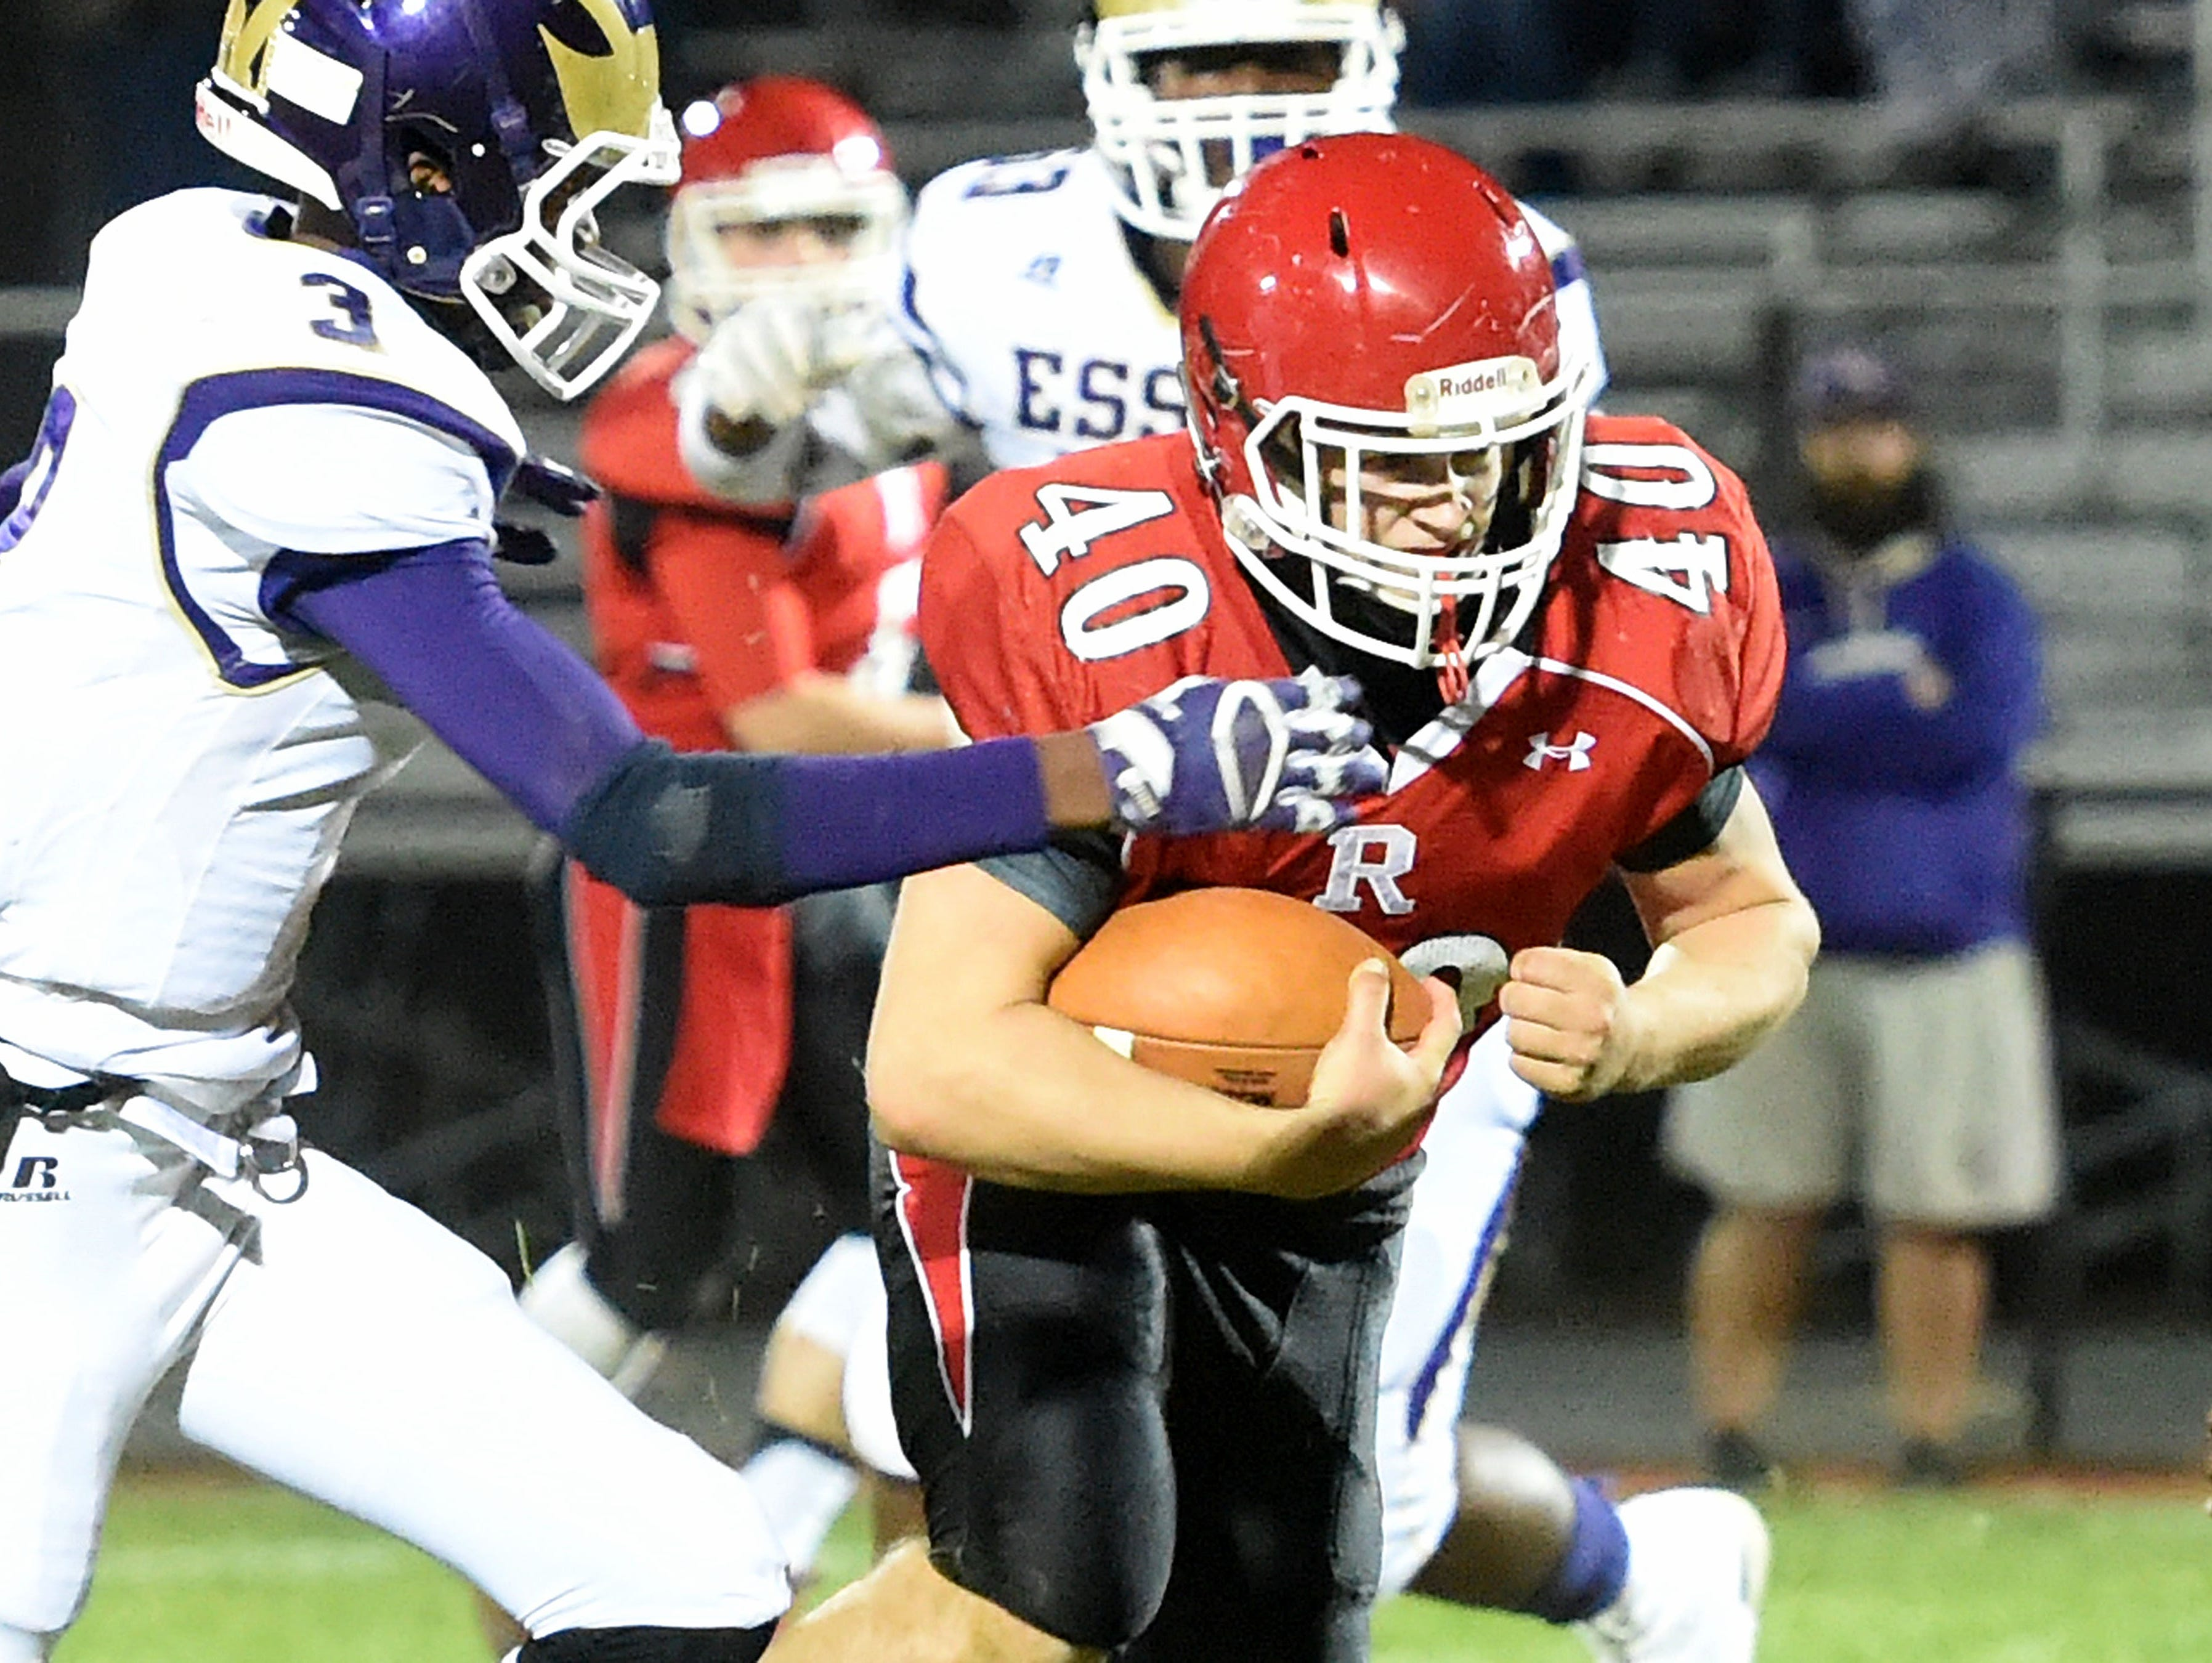 Harrison Schaefer rushed for 113 yards and three touchdowns in Riverheads' 38-0 win over Essex in the 1A East quarterfinals last Friday.